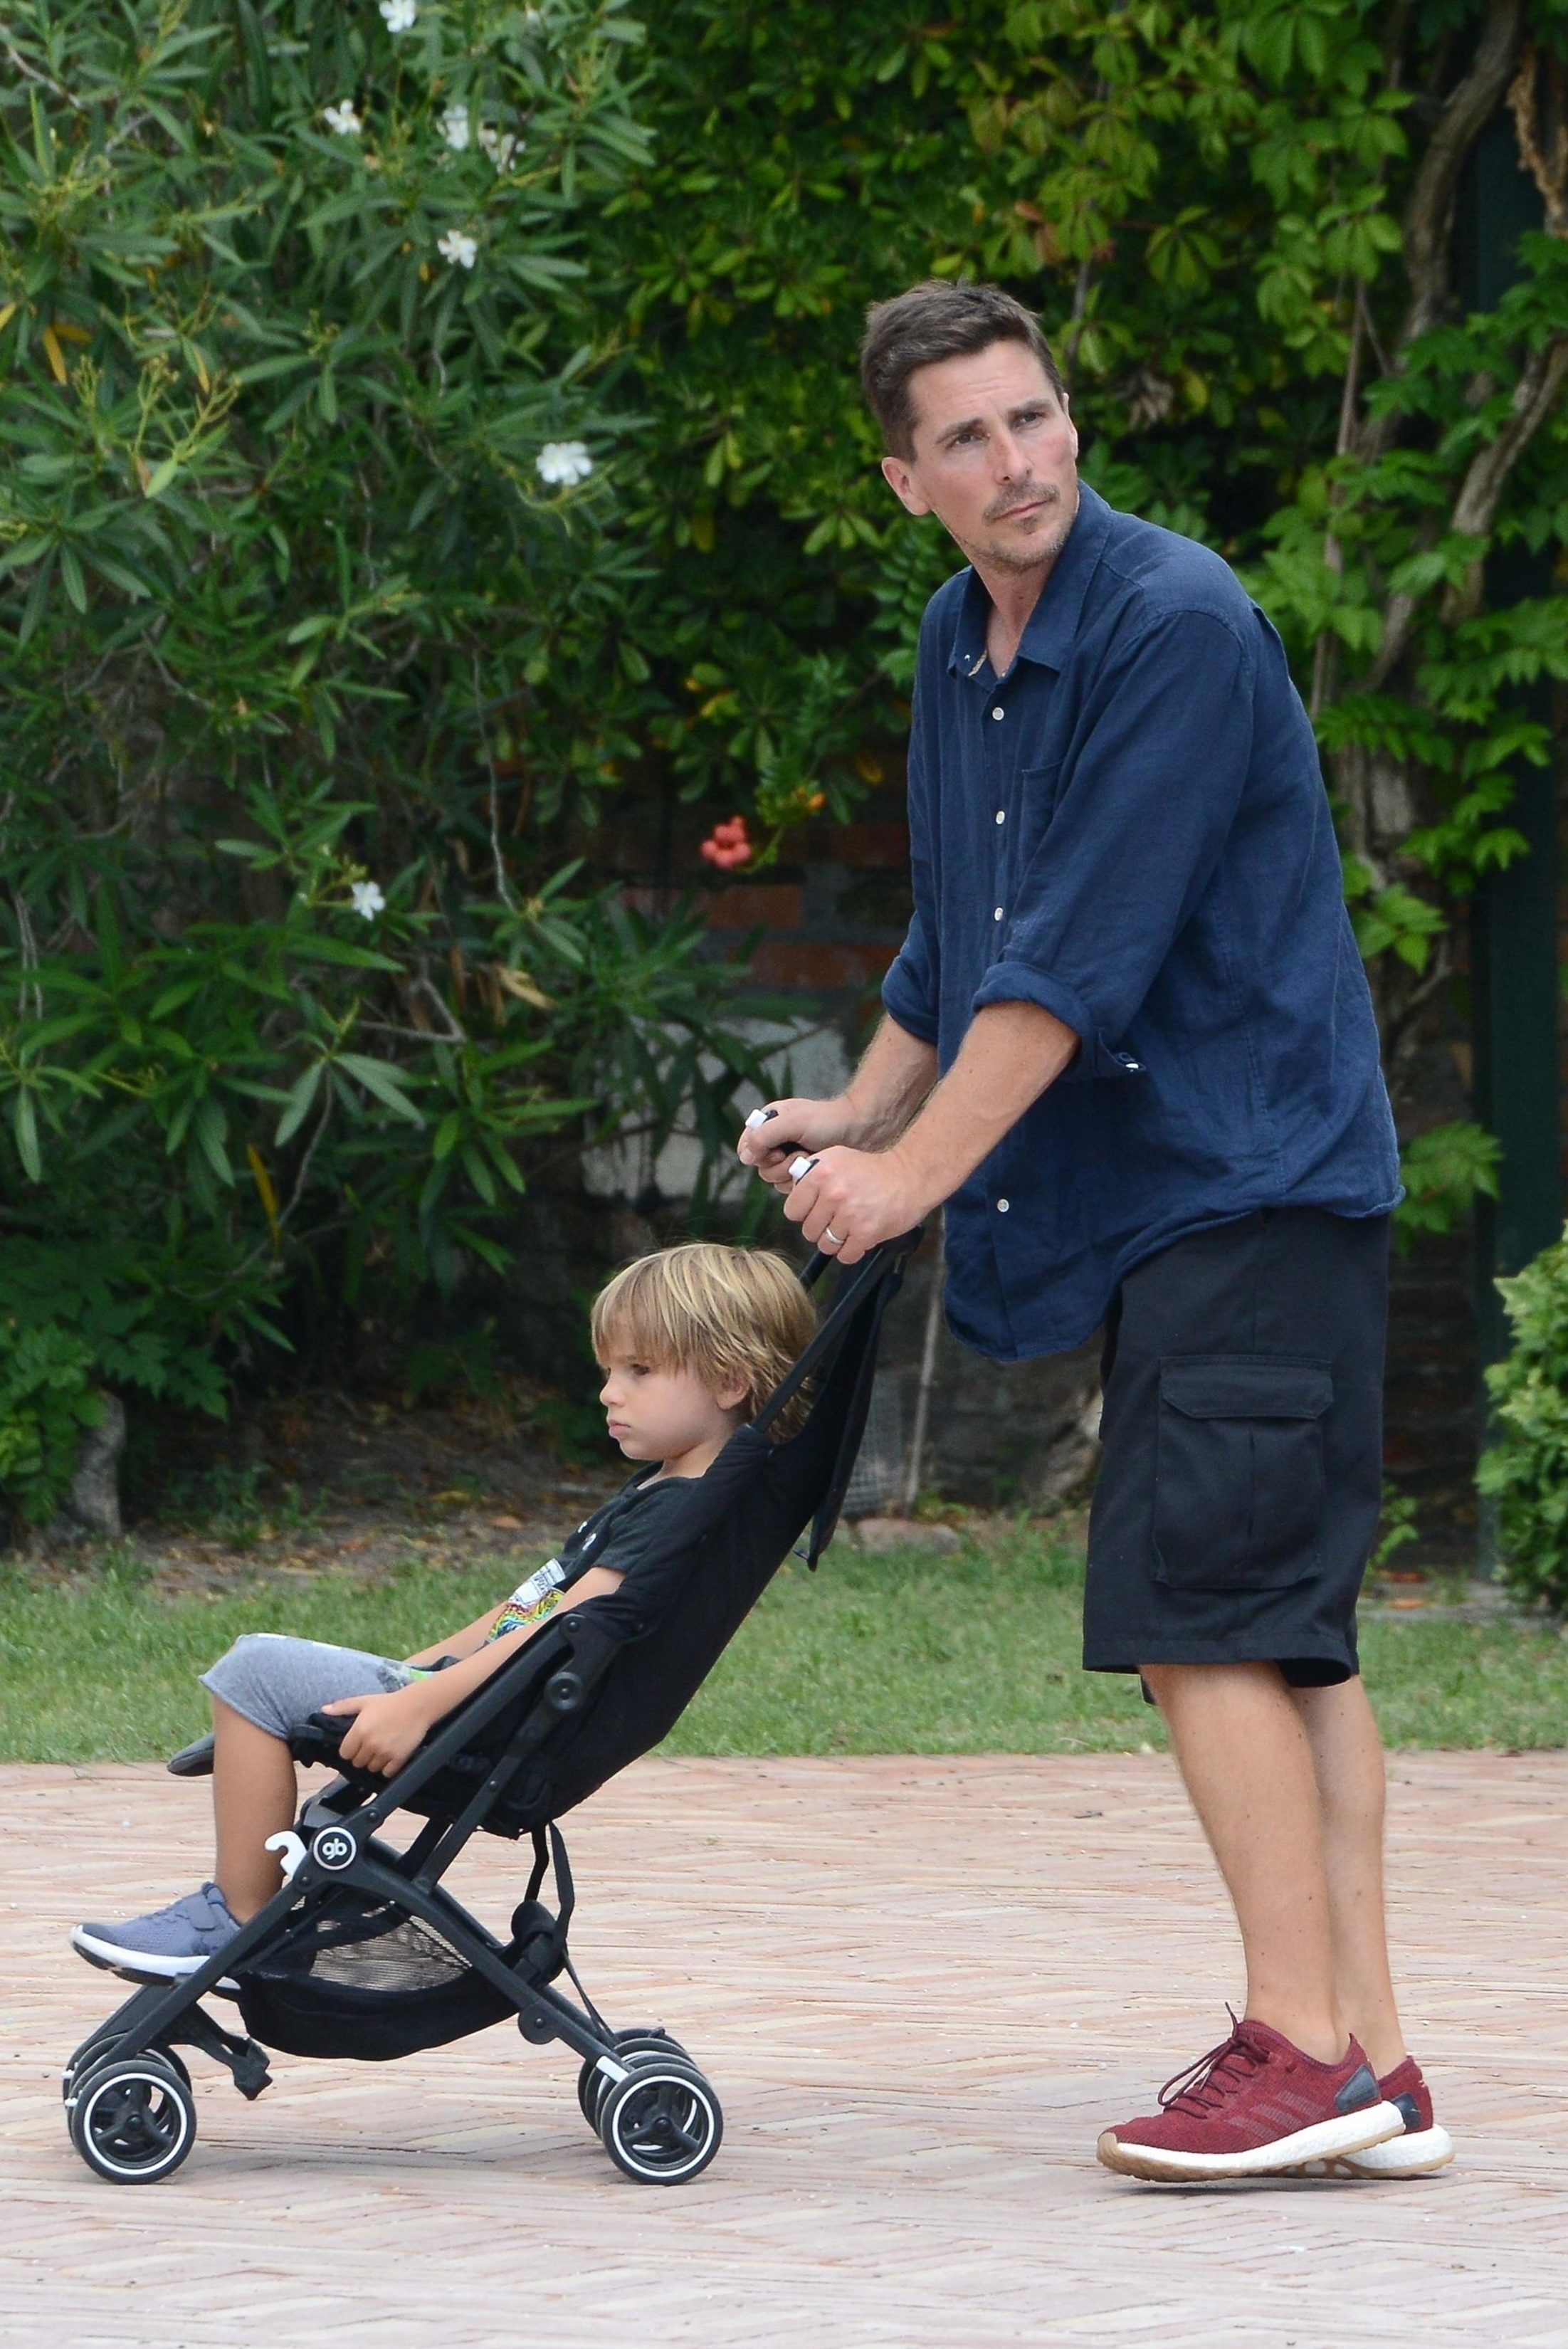 Christian Bale was seen enjoying a vacation with his son, Joseph, while in Torcello, Italy on July 20, 2018.